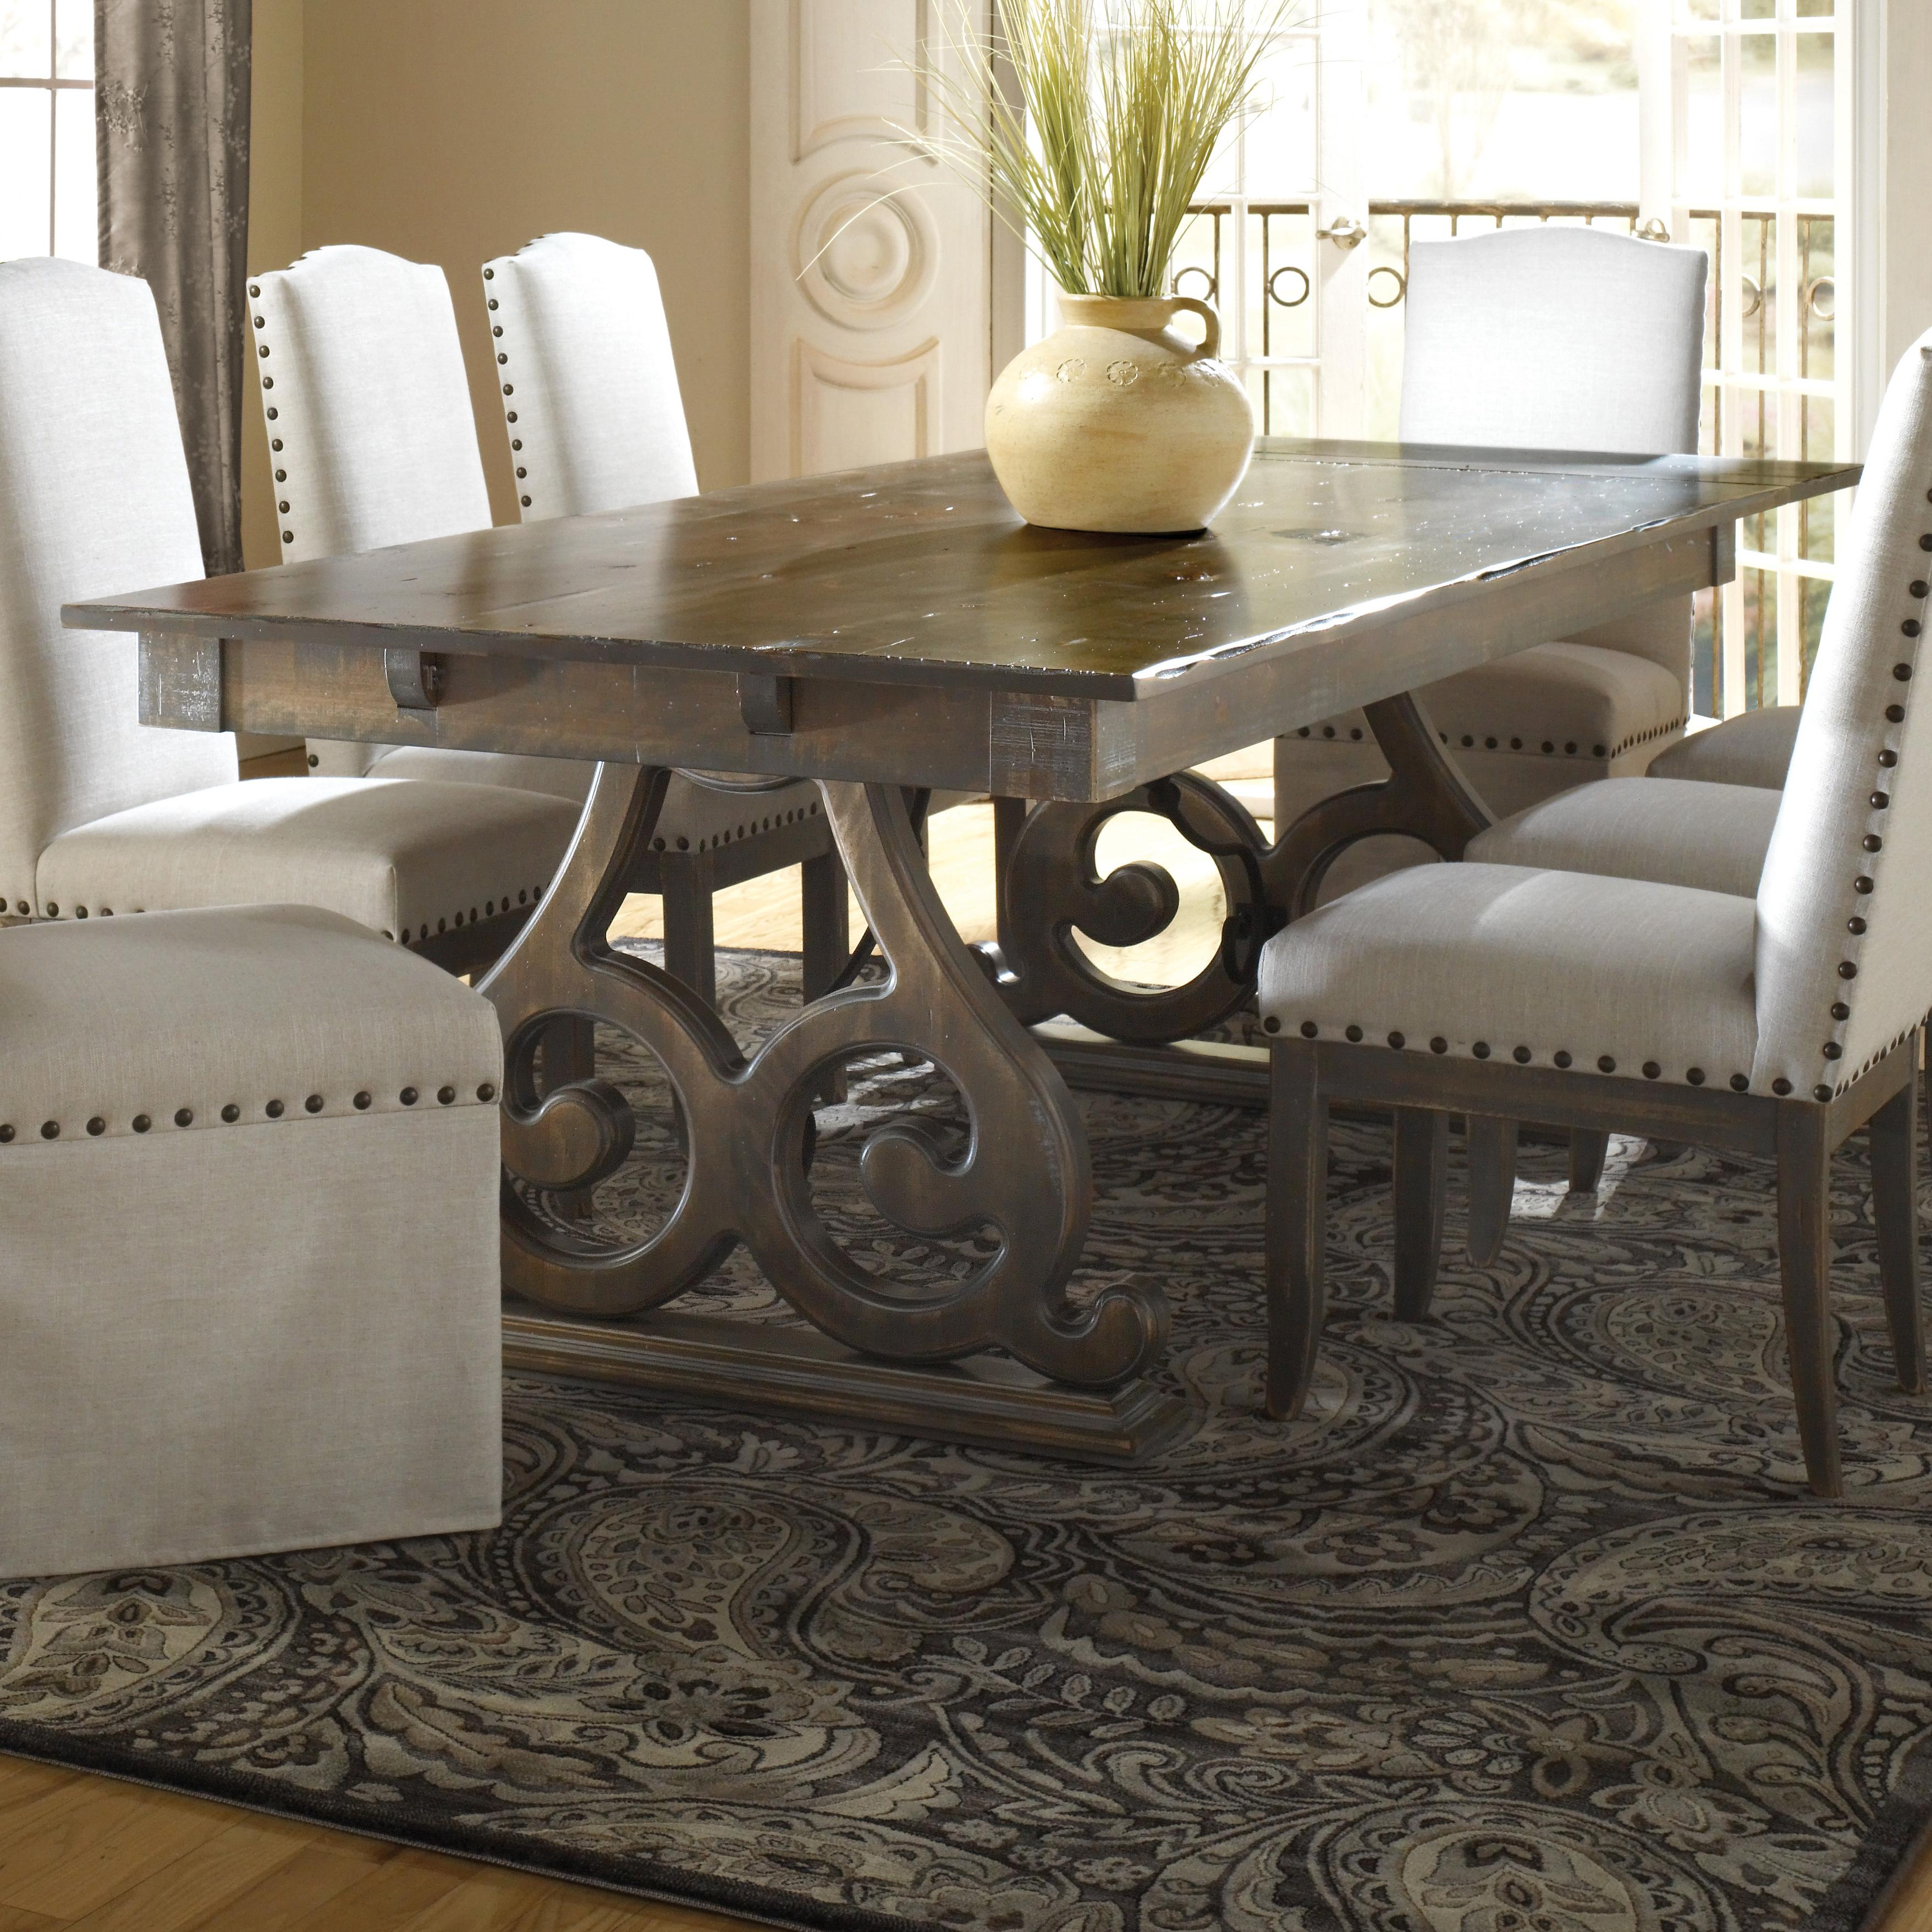 canadel champlain custom dining customizable rectangular table with double pedestal base. Black Bedroom Furniture Sets. Home Design Ideas